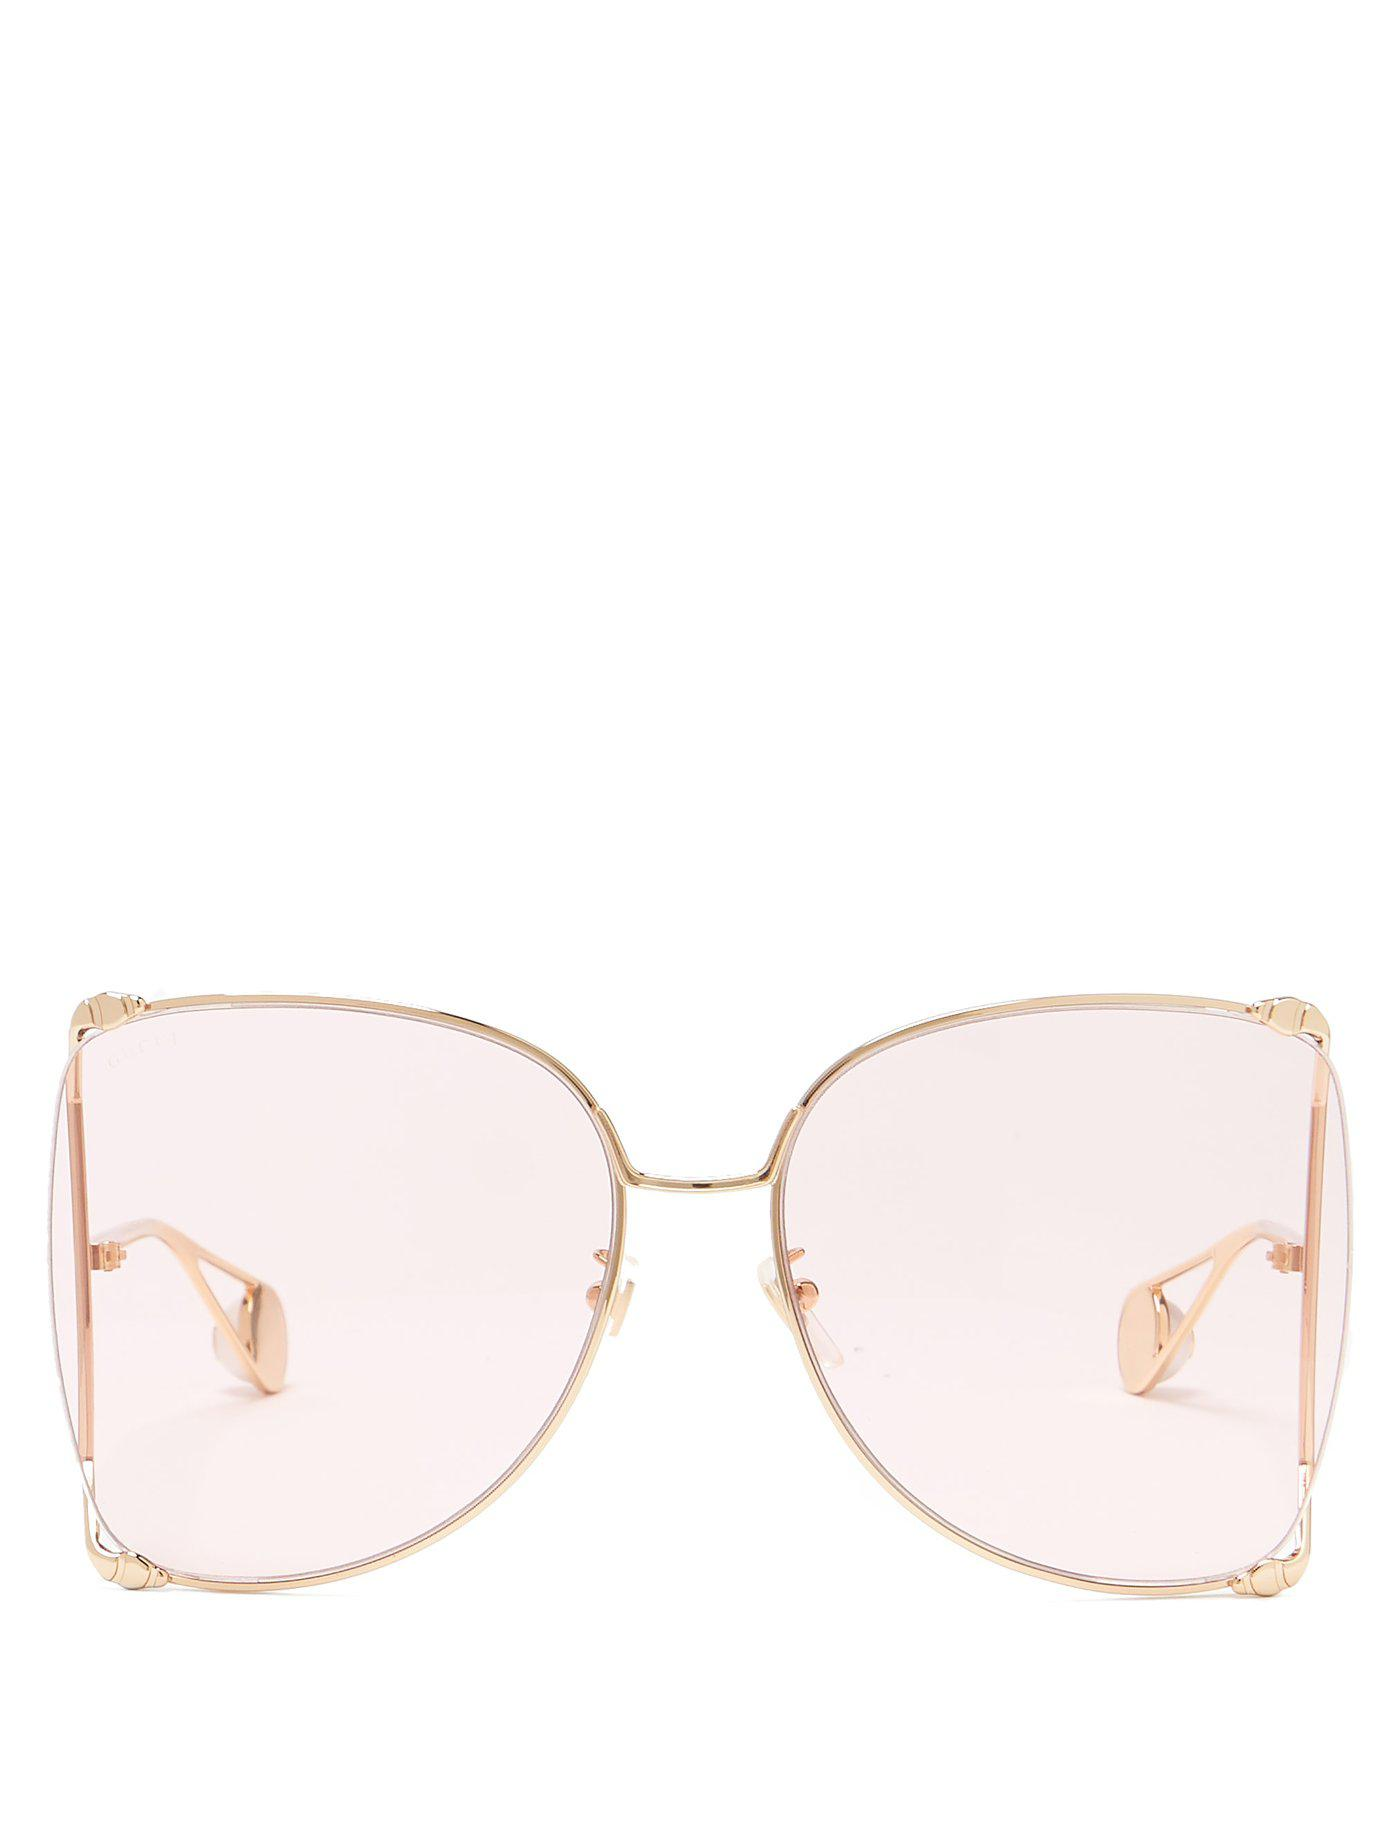 c6234a76e4 Lyst - Gucci Oversized Butterfly Frame Gg Sunglasses in Pink - Save 35%